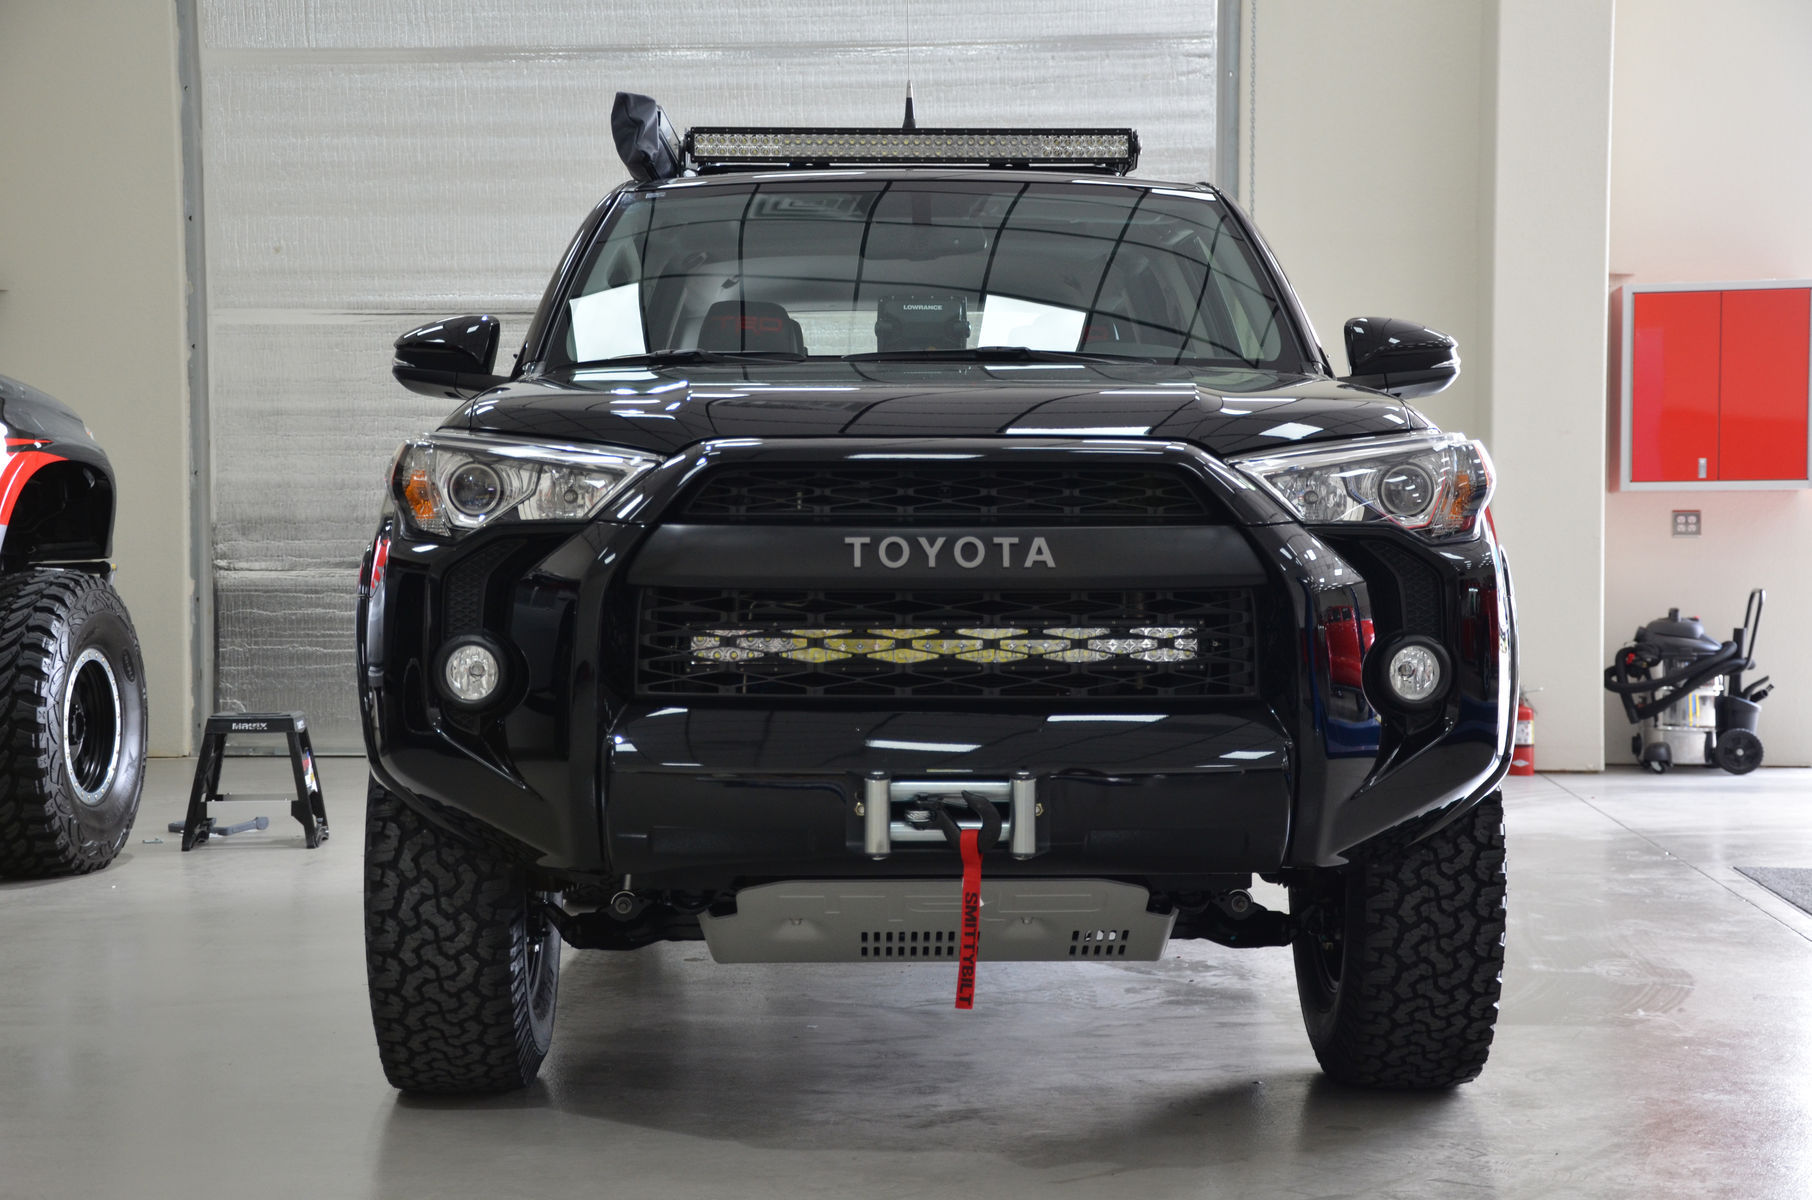 2014 Toyota 4Runner | N-FAB TRD PRO Build - Toyota 4-Runner Front LED Lights Shot